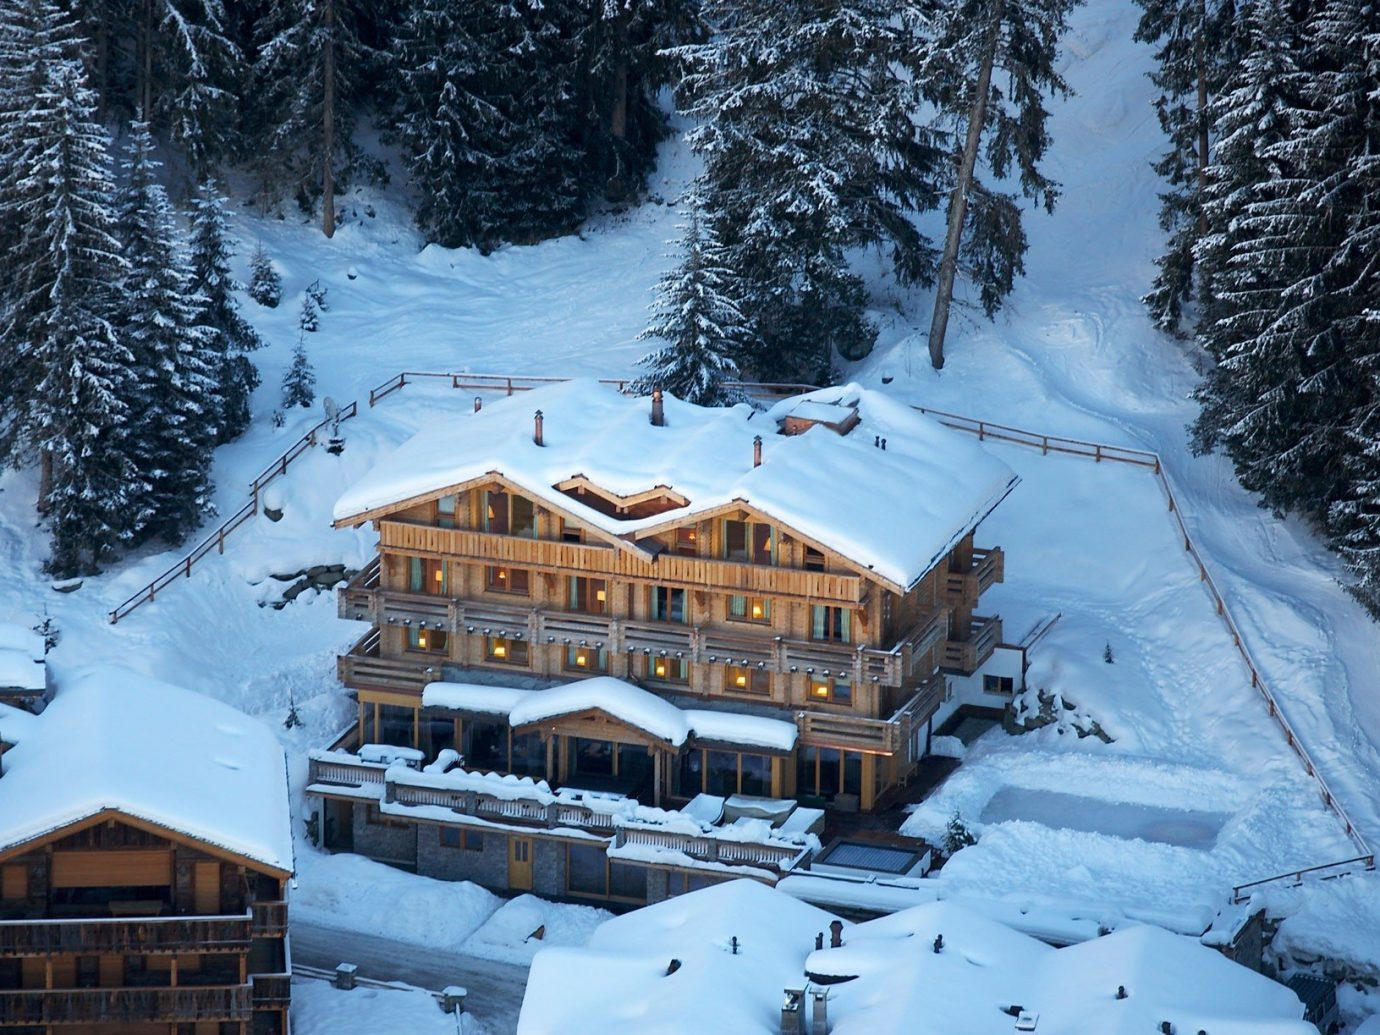 Hotels Luxury Travel Mountains + Skiing Trip Ideas snow outdoor tree skiing Winter weather mountain range geological phenomenon season mountain Resort Nature ski tow piste transport alps winter sport Ski ski equipment nordic skiing Forest surrounded